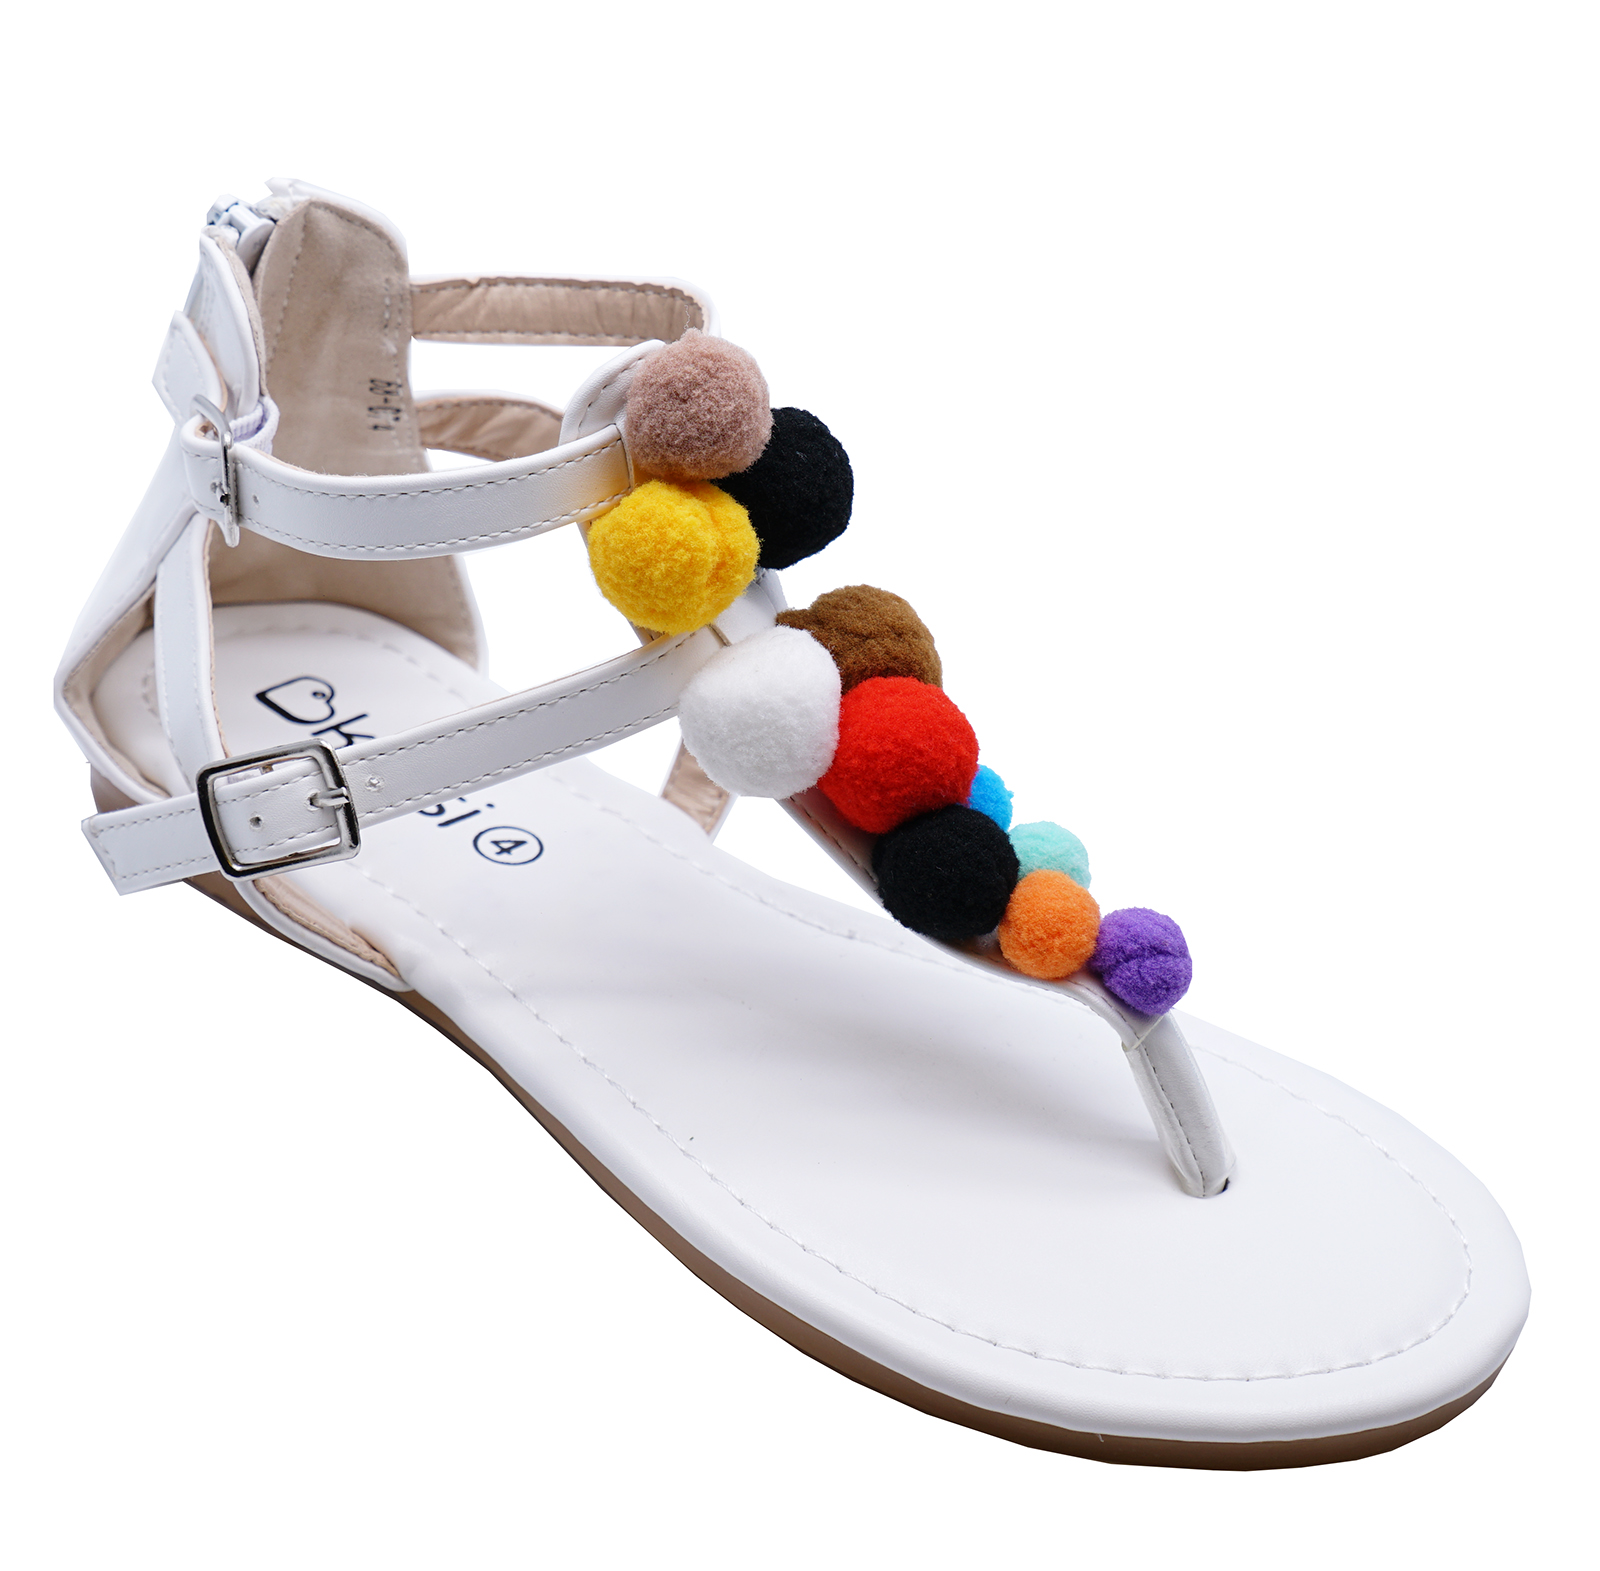 87e284fd5 Sentinel LADIES FLAT WHITE T-BAR GLADIATOR SUMMER OPEN-TOE SANDALS HOLIDAY SHOES  UK 3